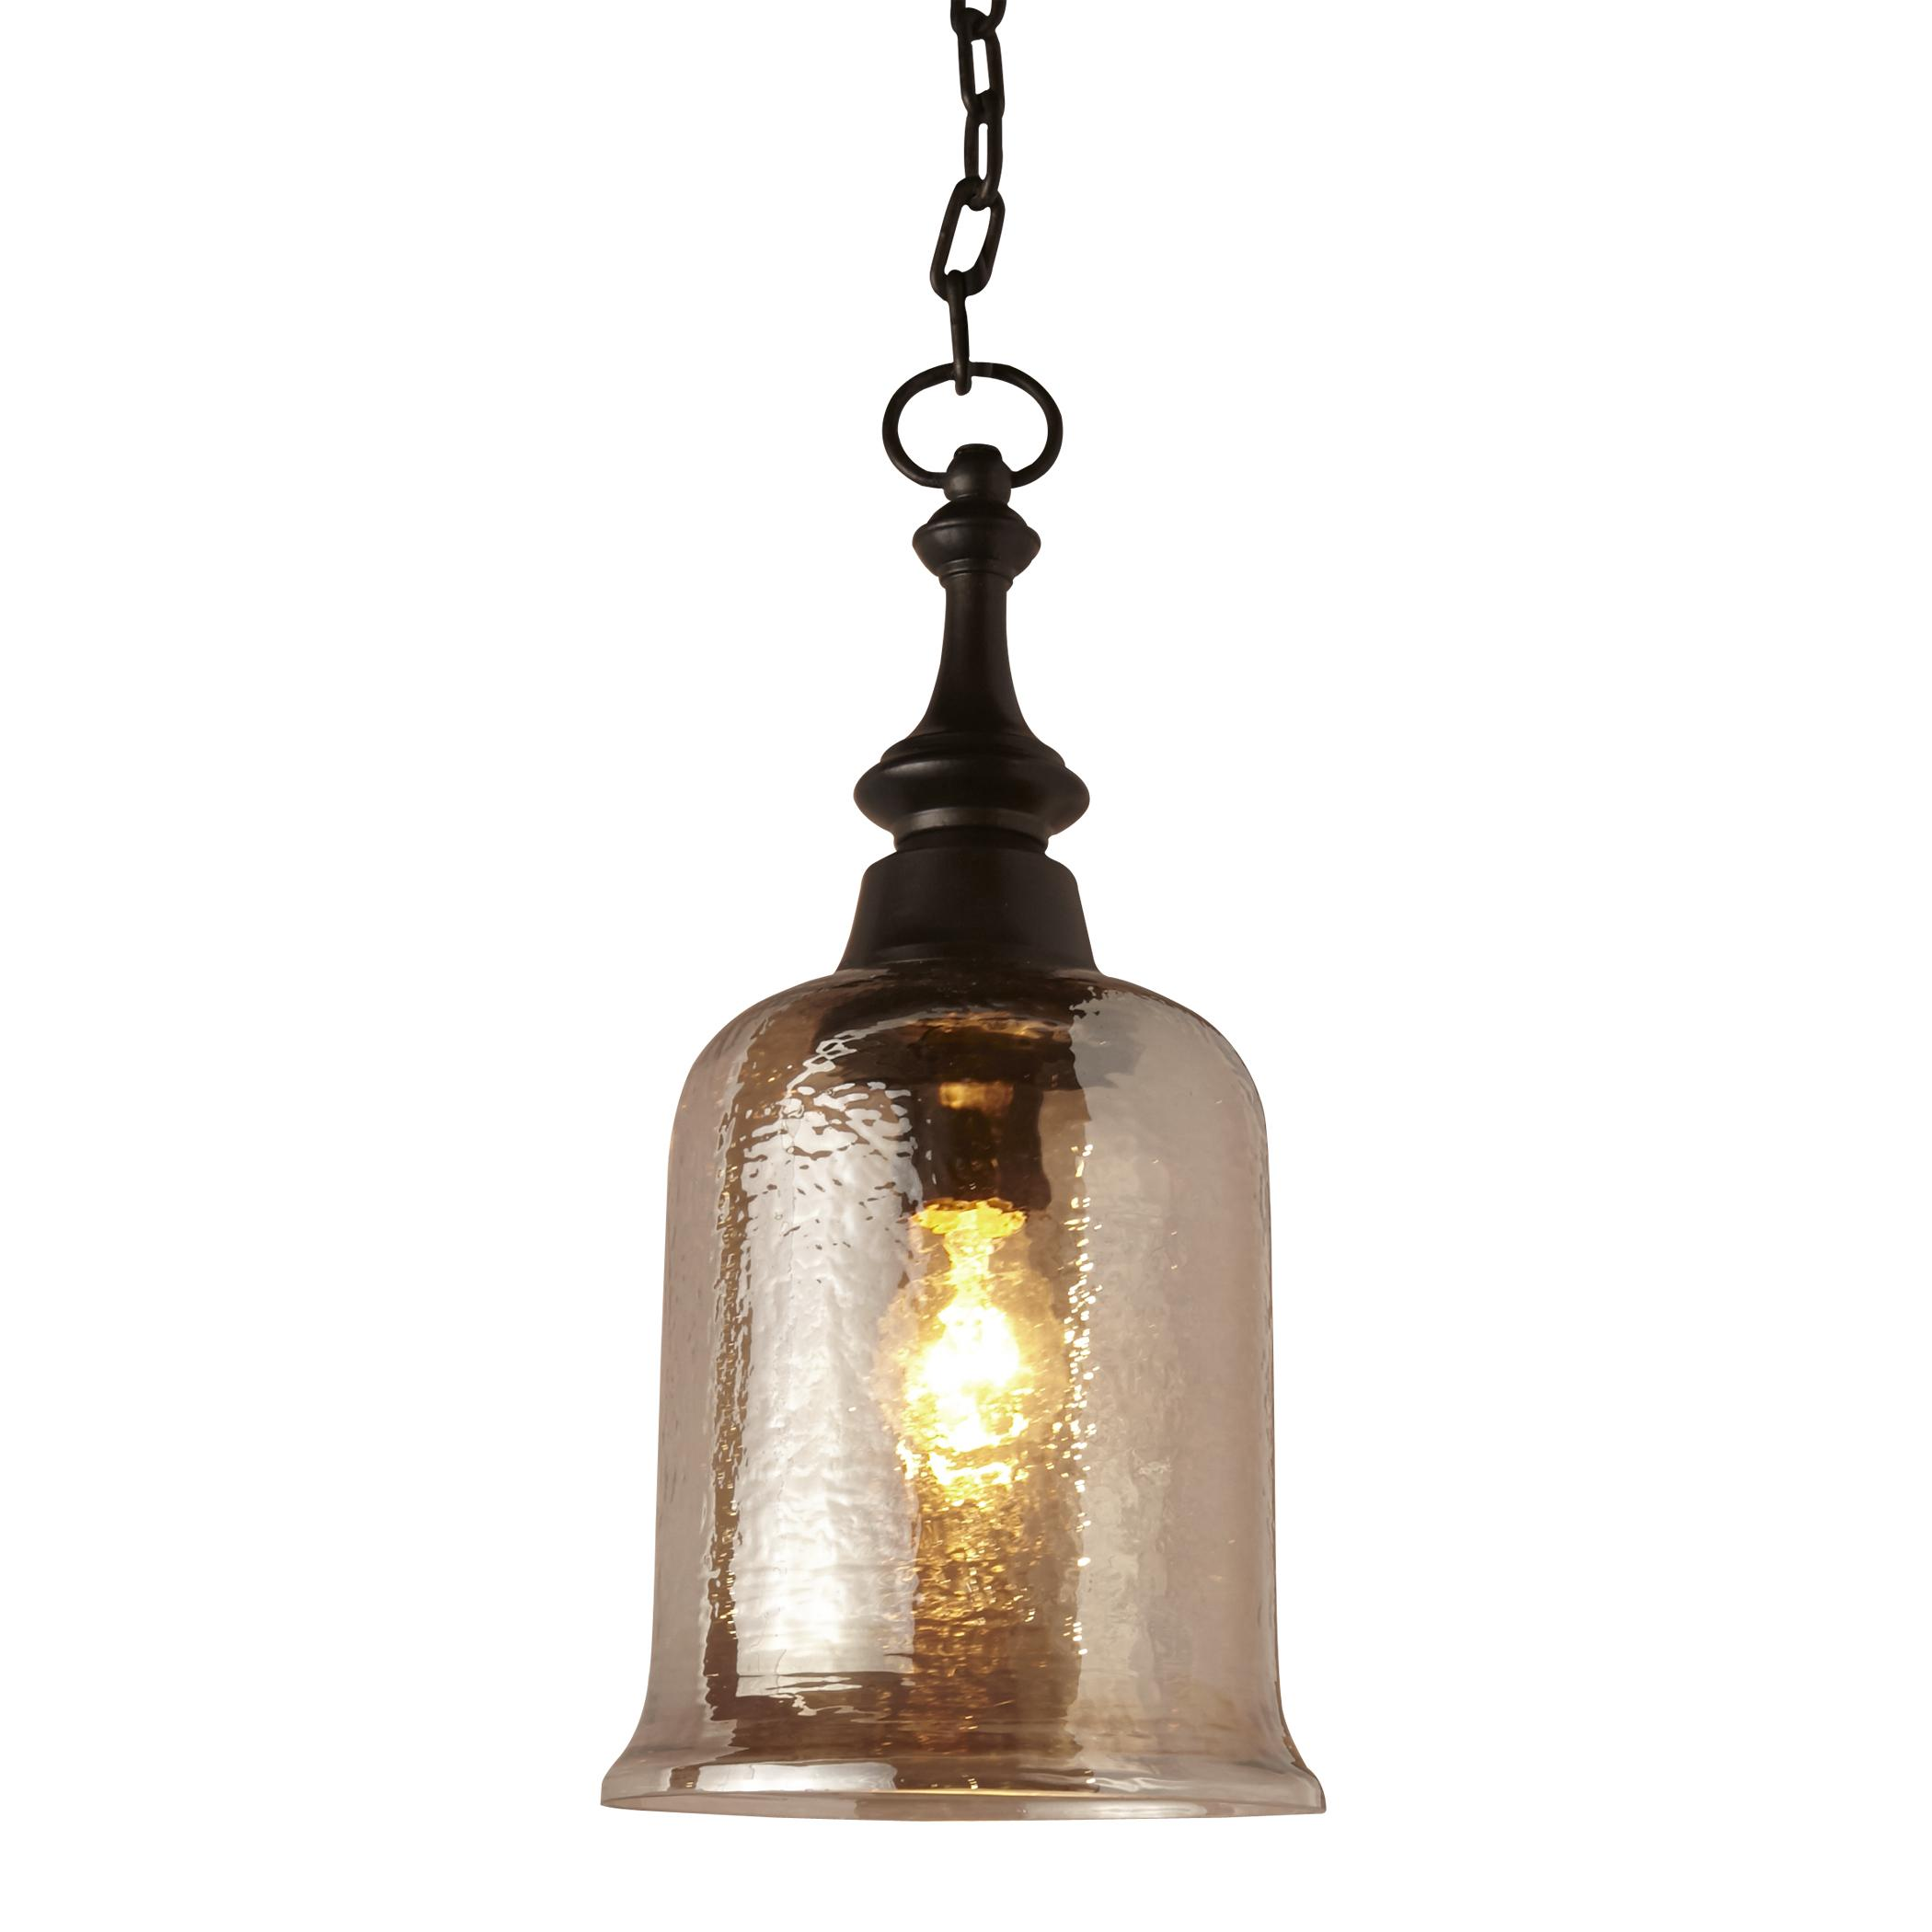 Uttermost Lighting Fixtures Lustre 1 Light Mini Pendant - Item Number: 22013